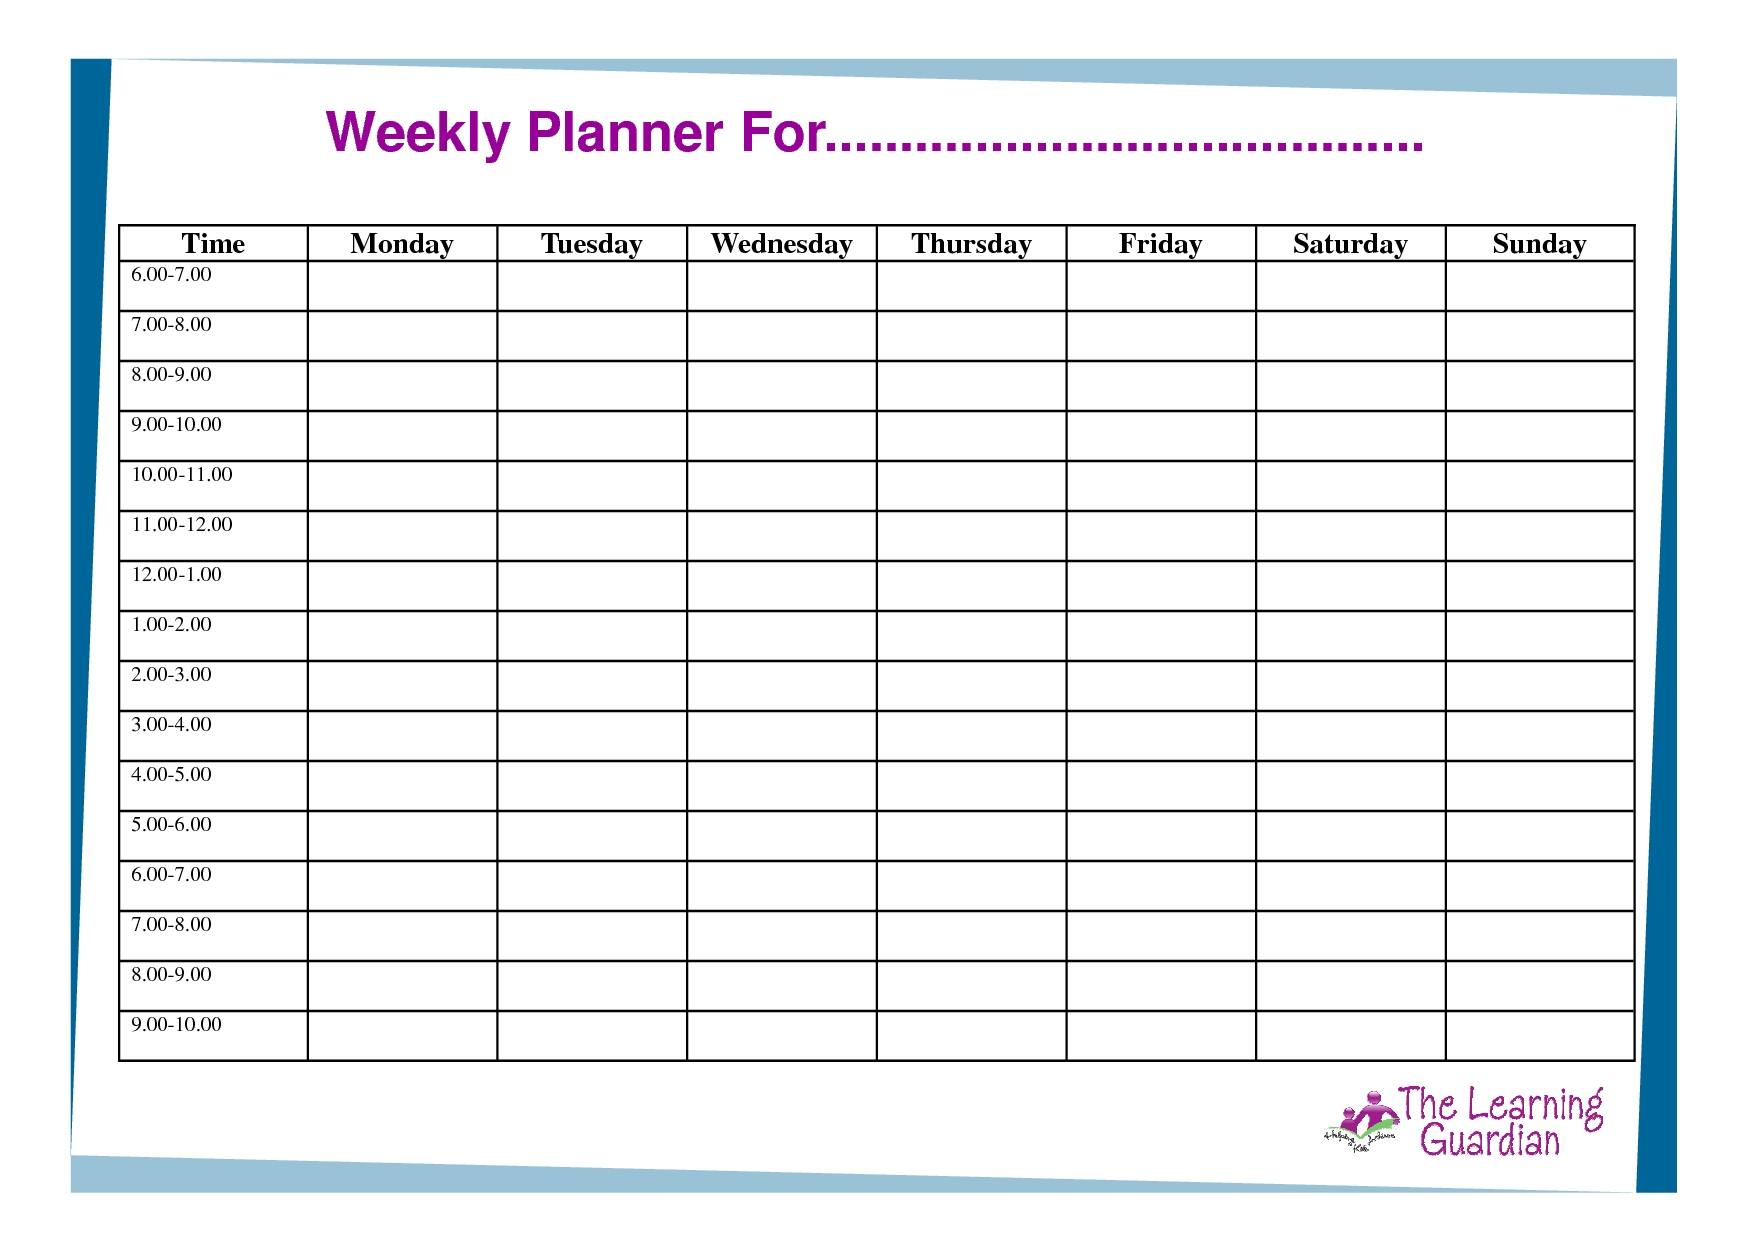 Monday To Friday Schedule Printable - Calendar Inspiration  Editable Monday-Friday Shedule